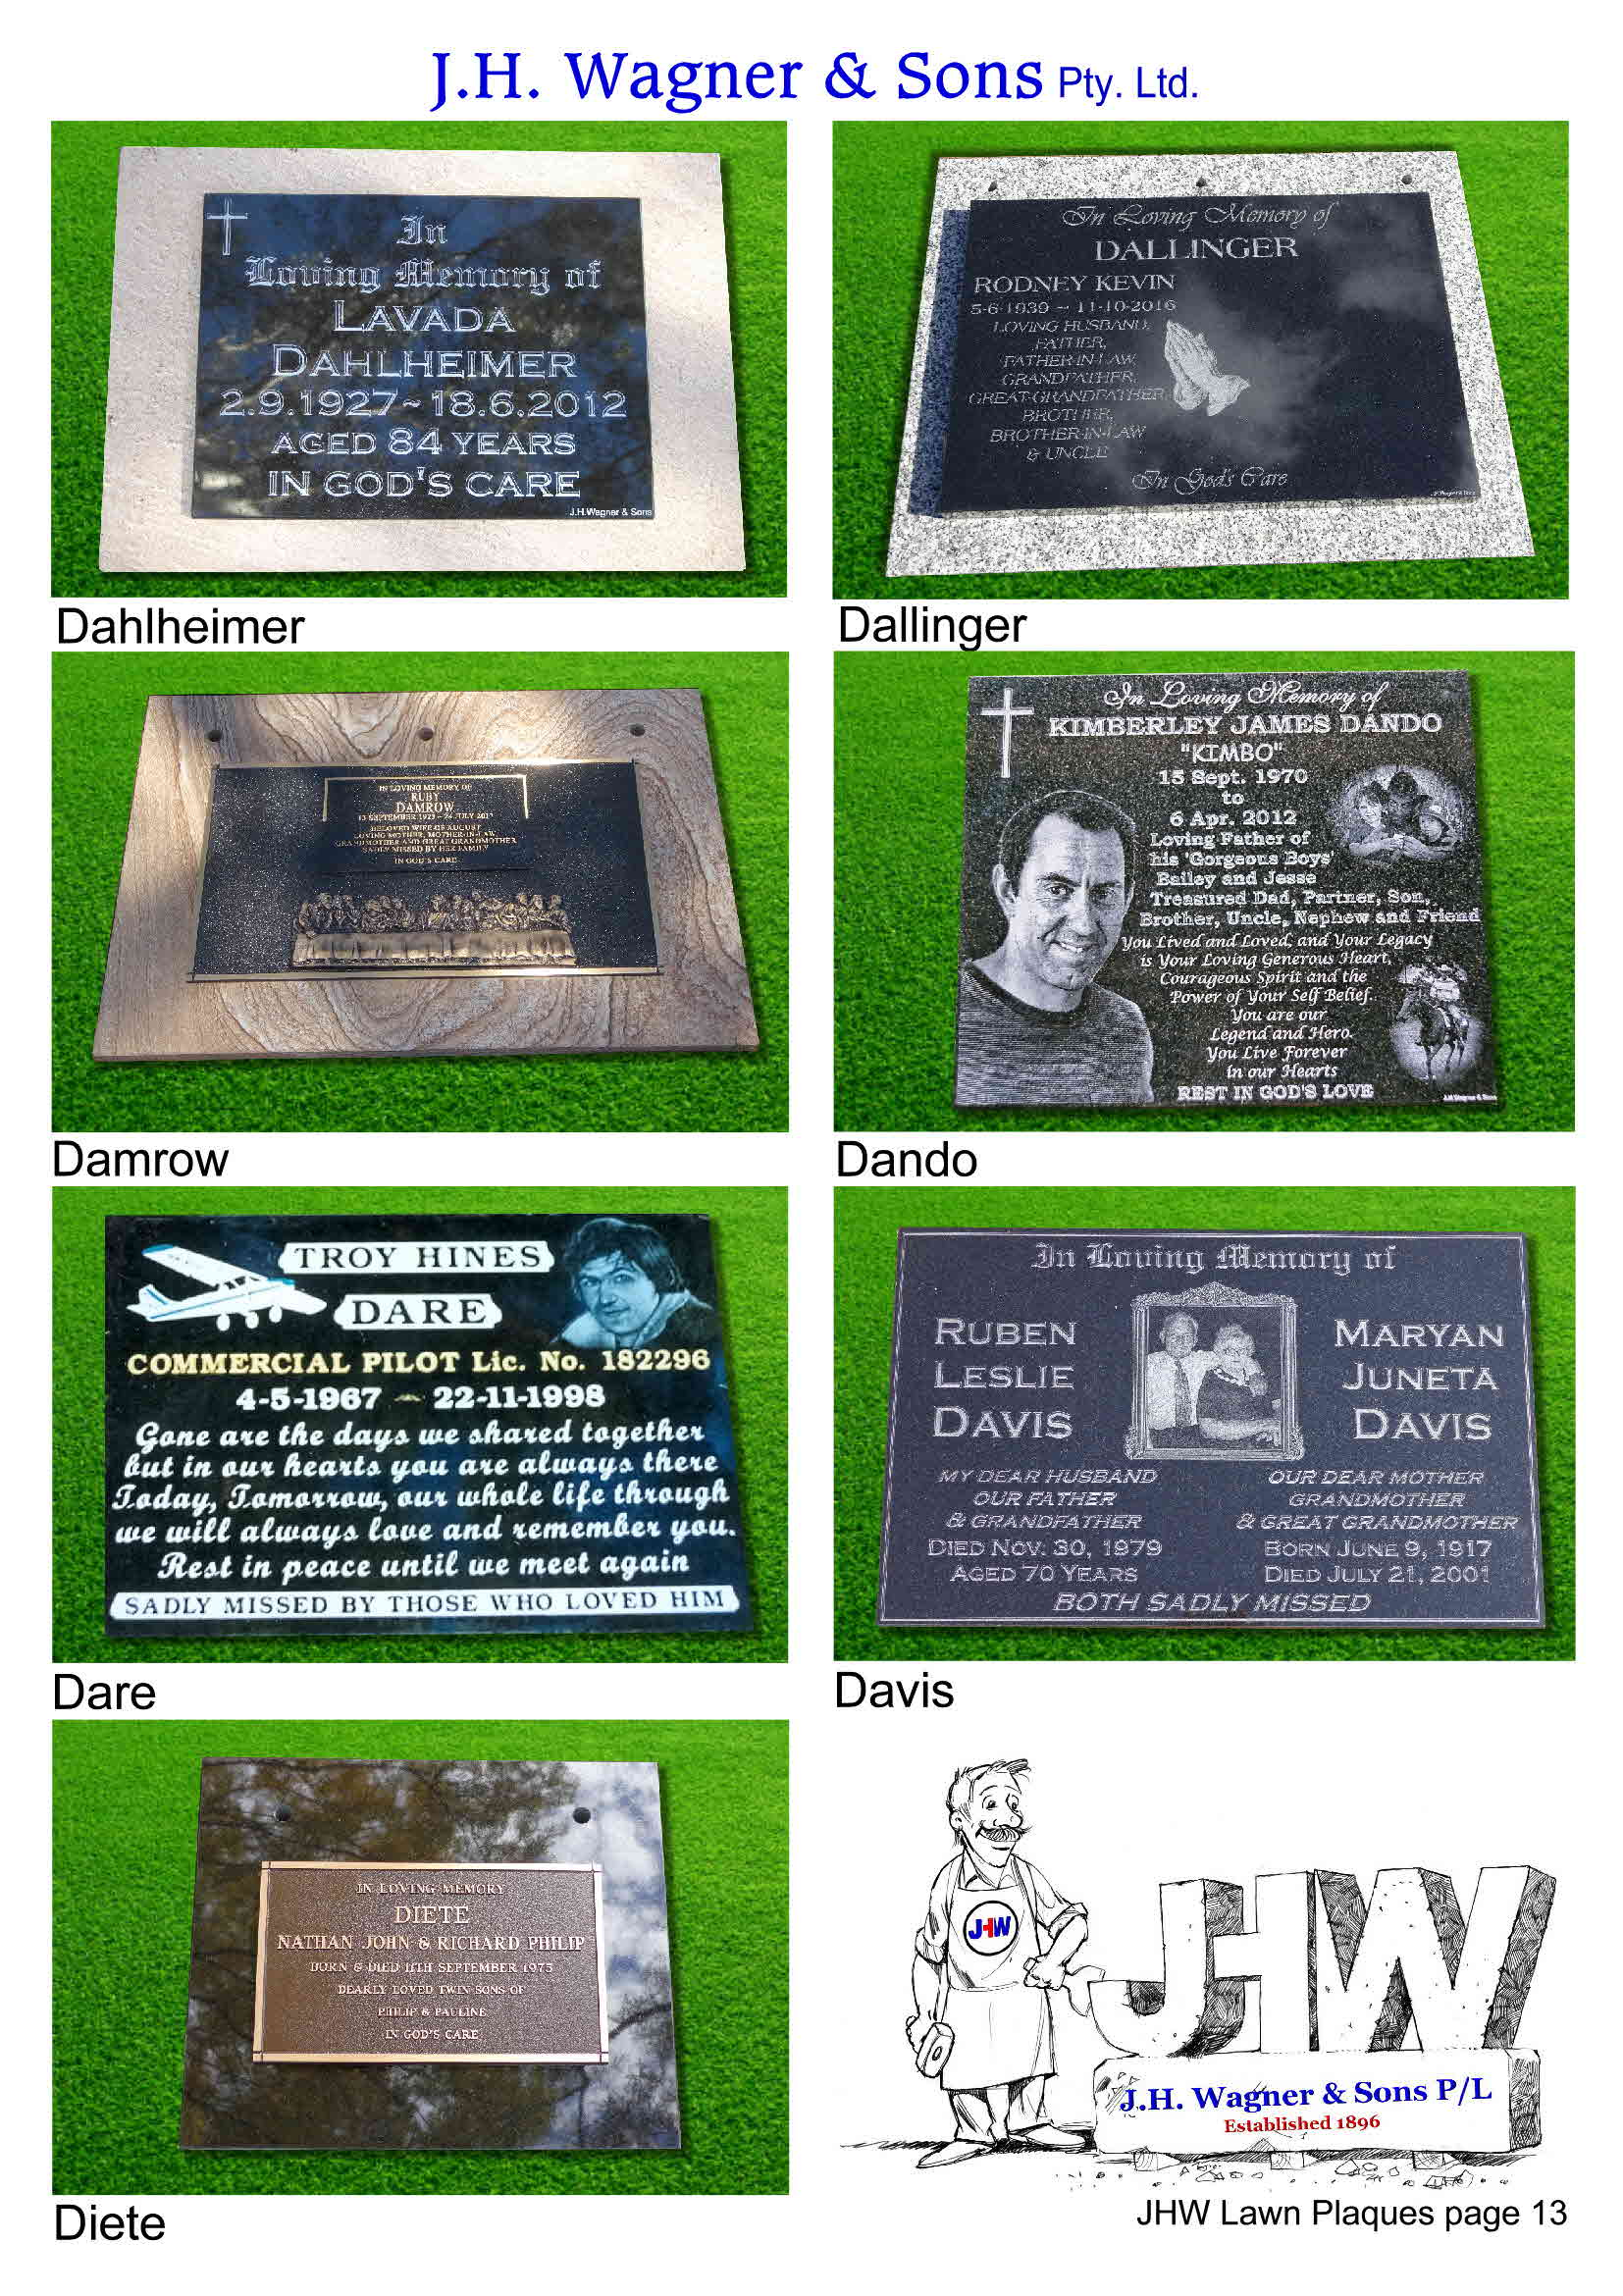 Memorial Plaques by J.H. Wagner & Sons. Page 13